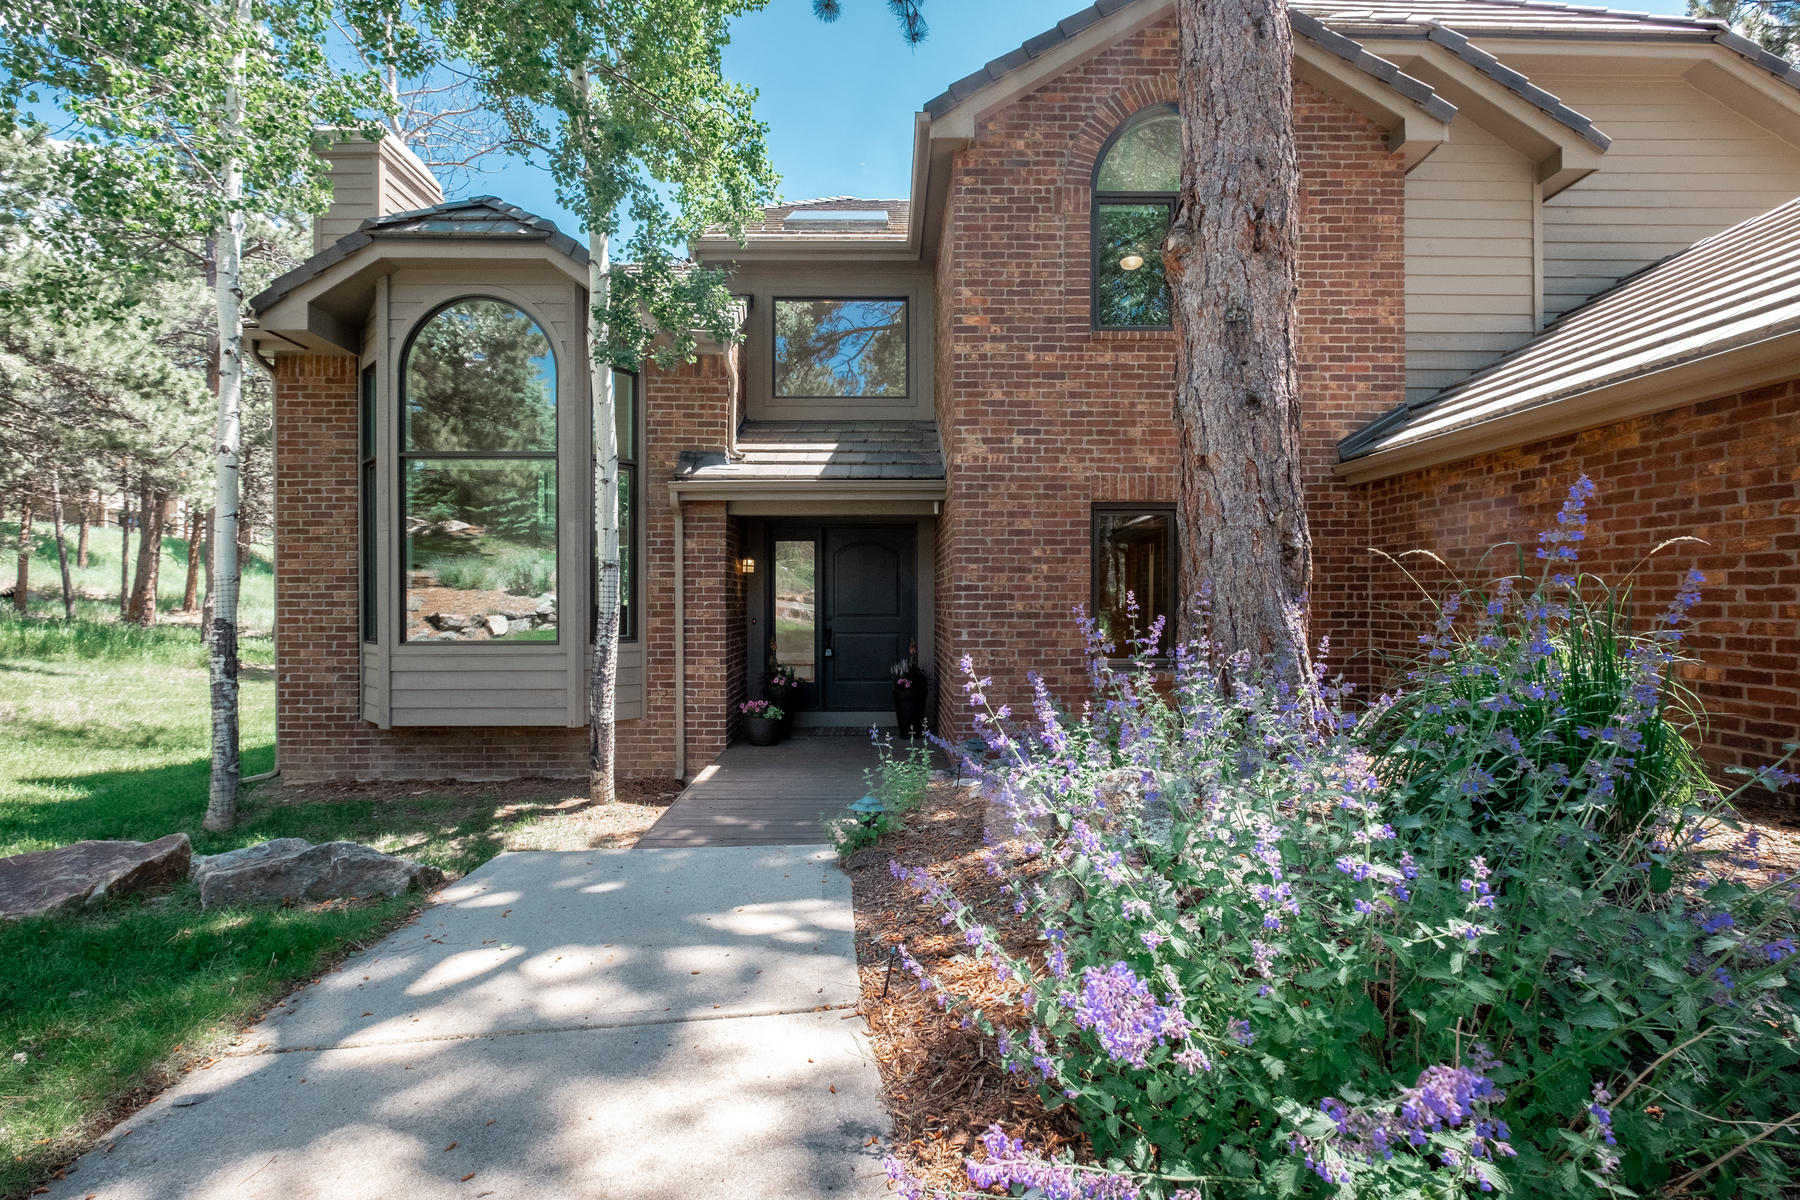 Single Family Homes for Active at Amazing Updated Mountain Contemporary in the Ridge at Hiwan 2102 Cramner Court Evergreen, Colorado 80439 United States